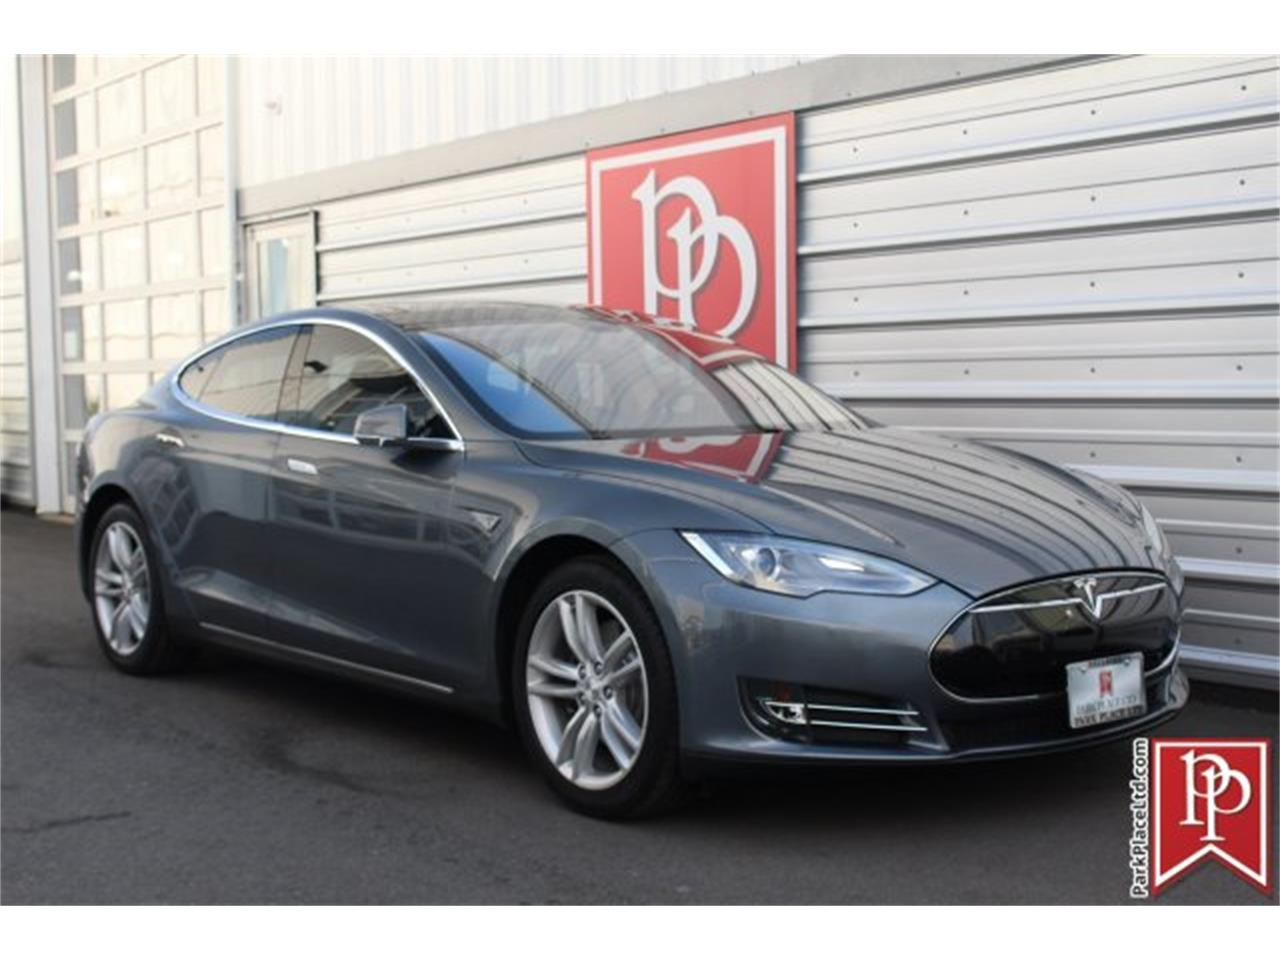 Large Picture of 2014 Tesla Model S located in Bellevue Washington - $37,950.00 Offered by Park Place Ltd - OW52